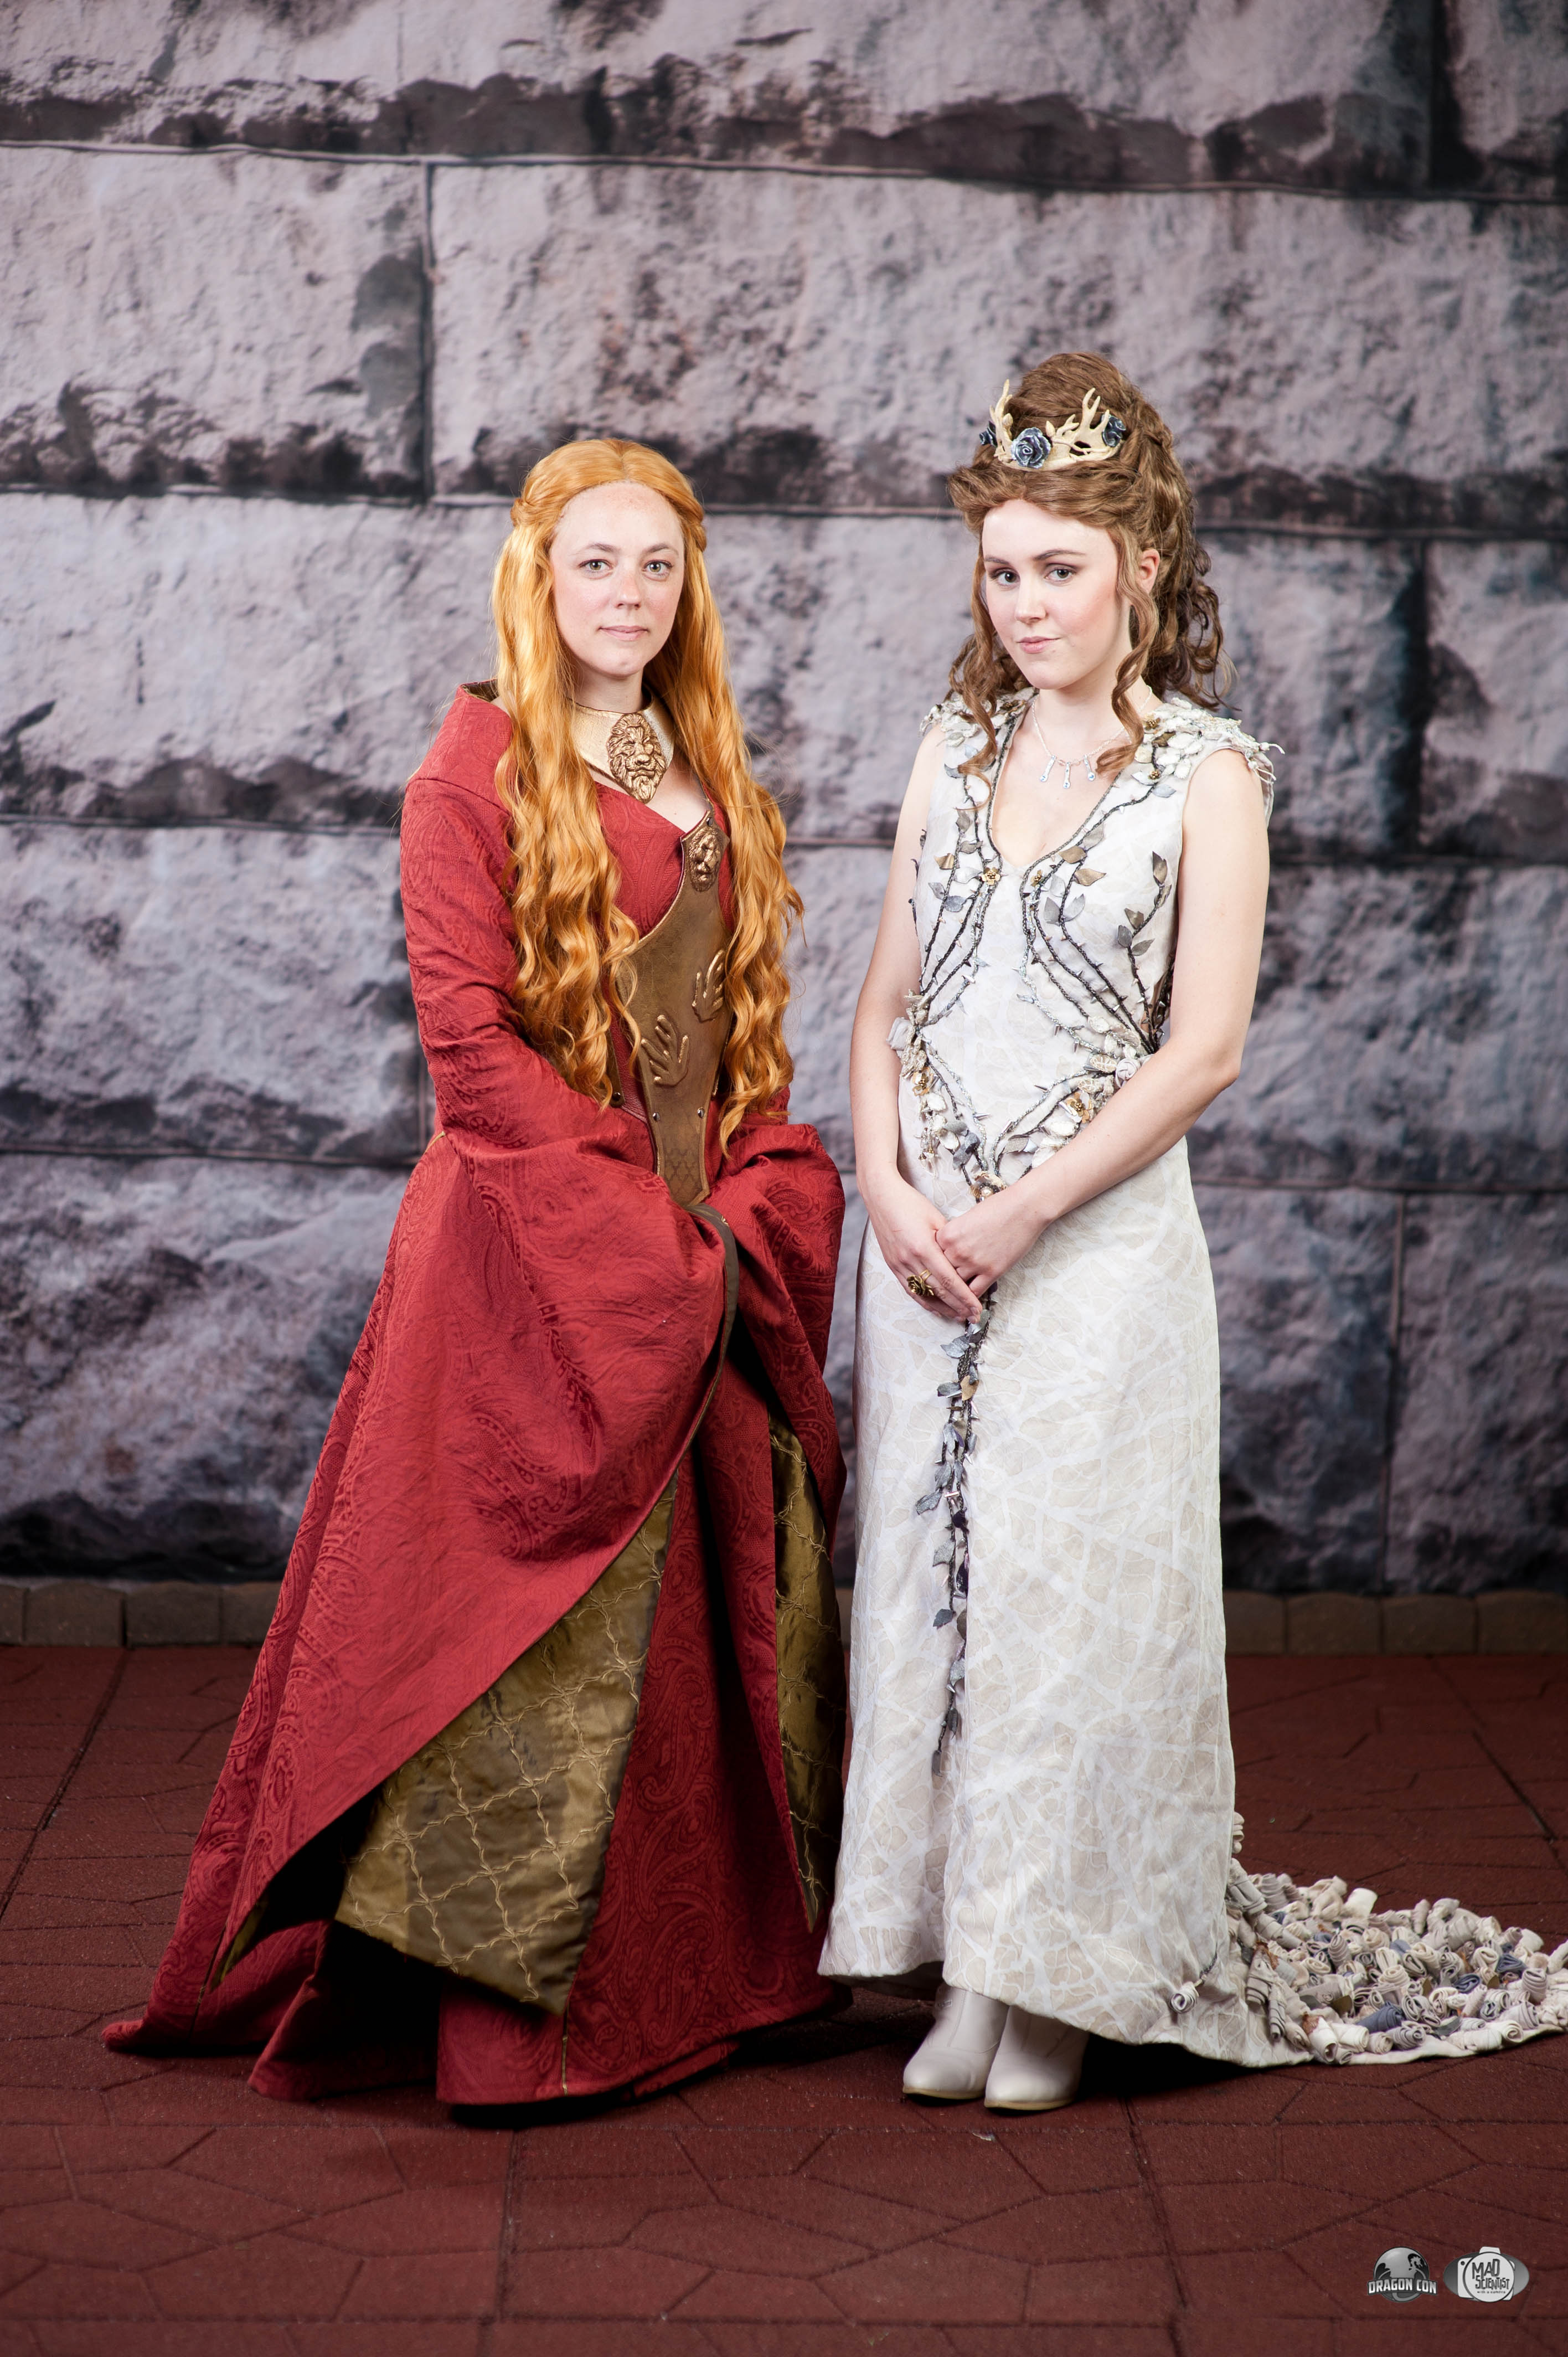 Margaery Tyrell Purple Wedding Dress & Cercei Lannister - Game of Thrones